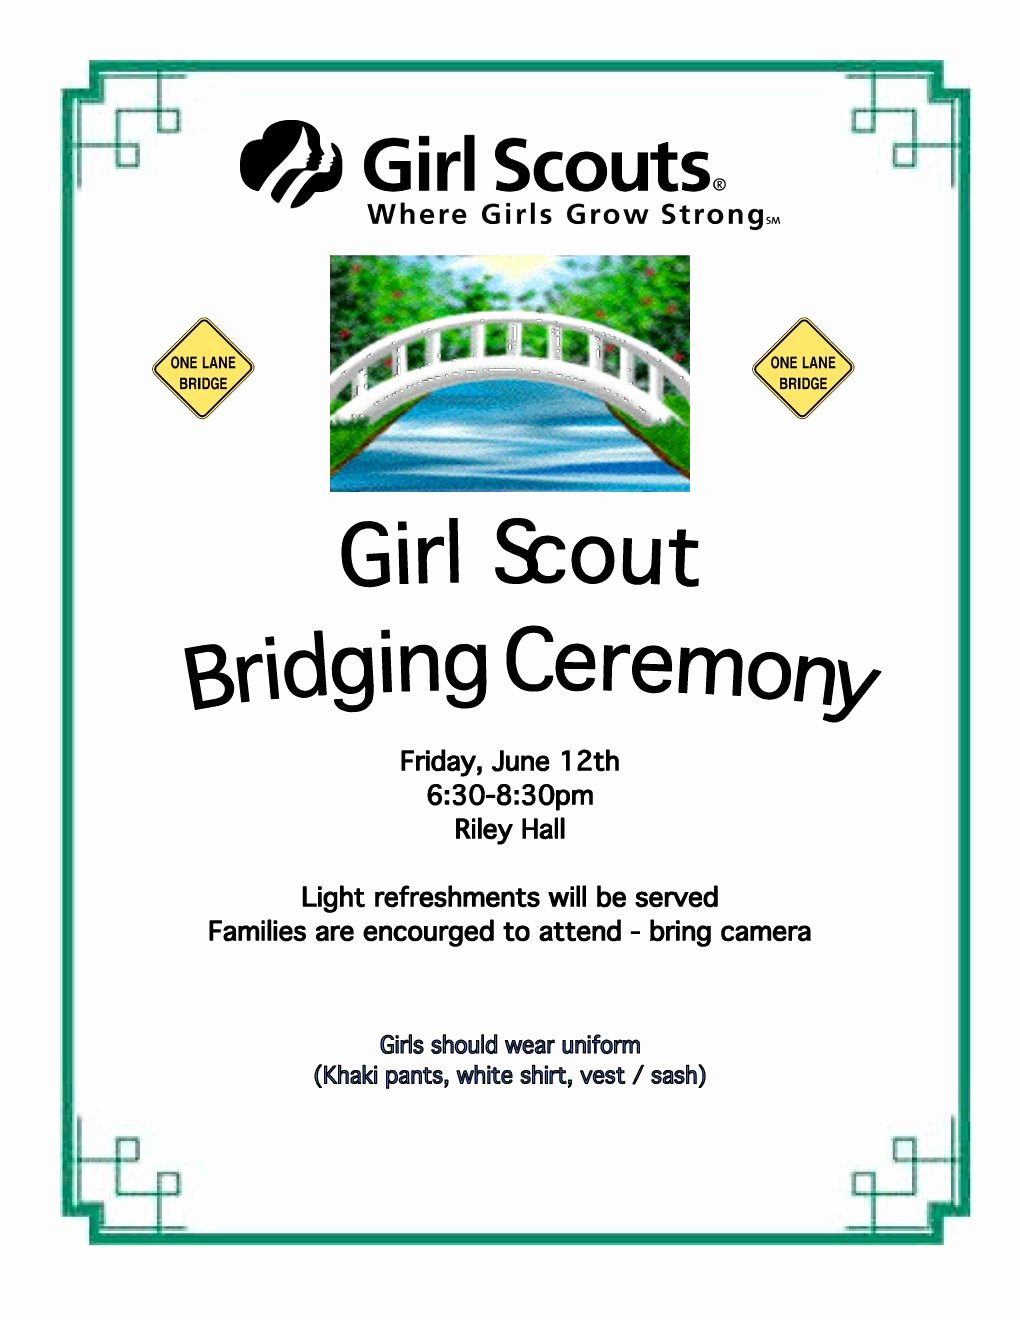 Girls Scout Bridging Certificates Luxury Bridging Ceremony Hanover Girl Scouts Ideas for Girl Scouts Pinterest